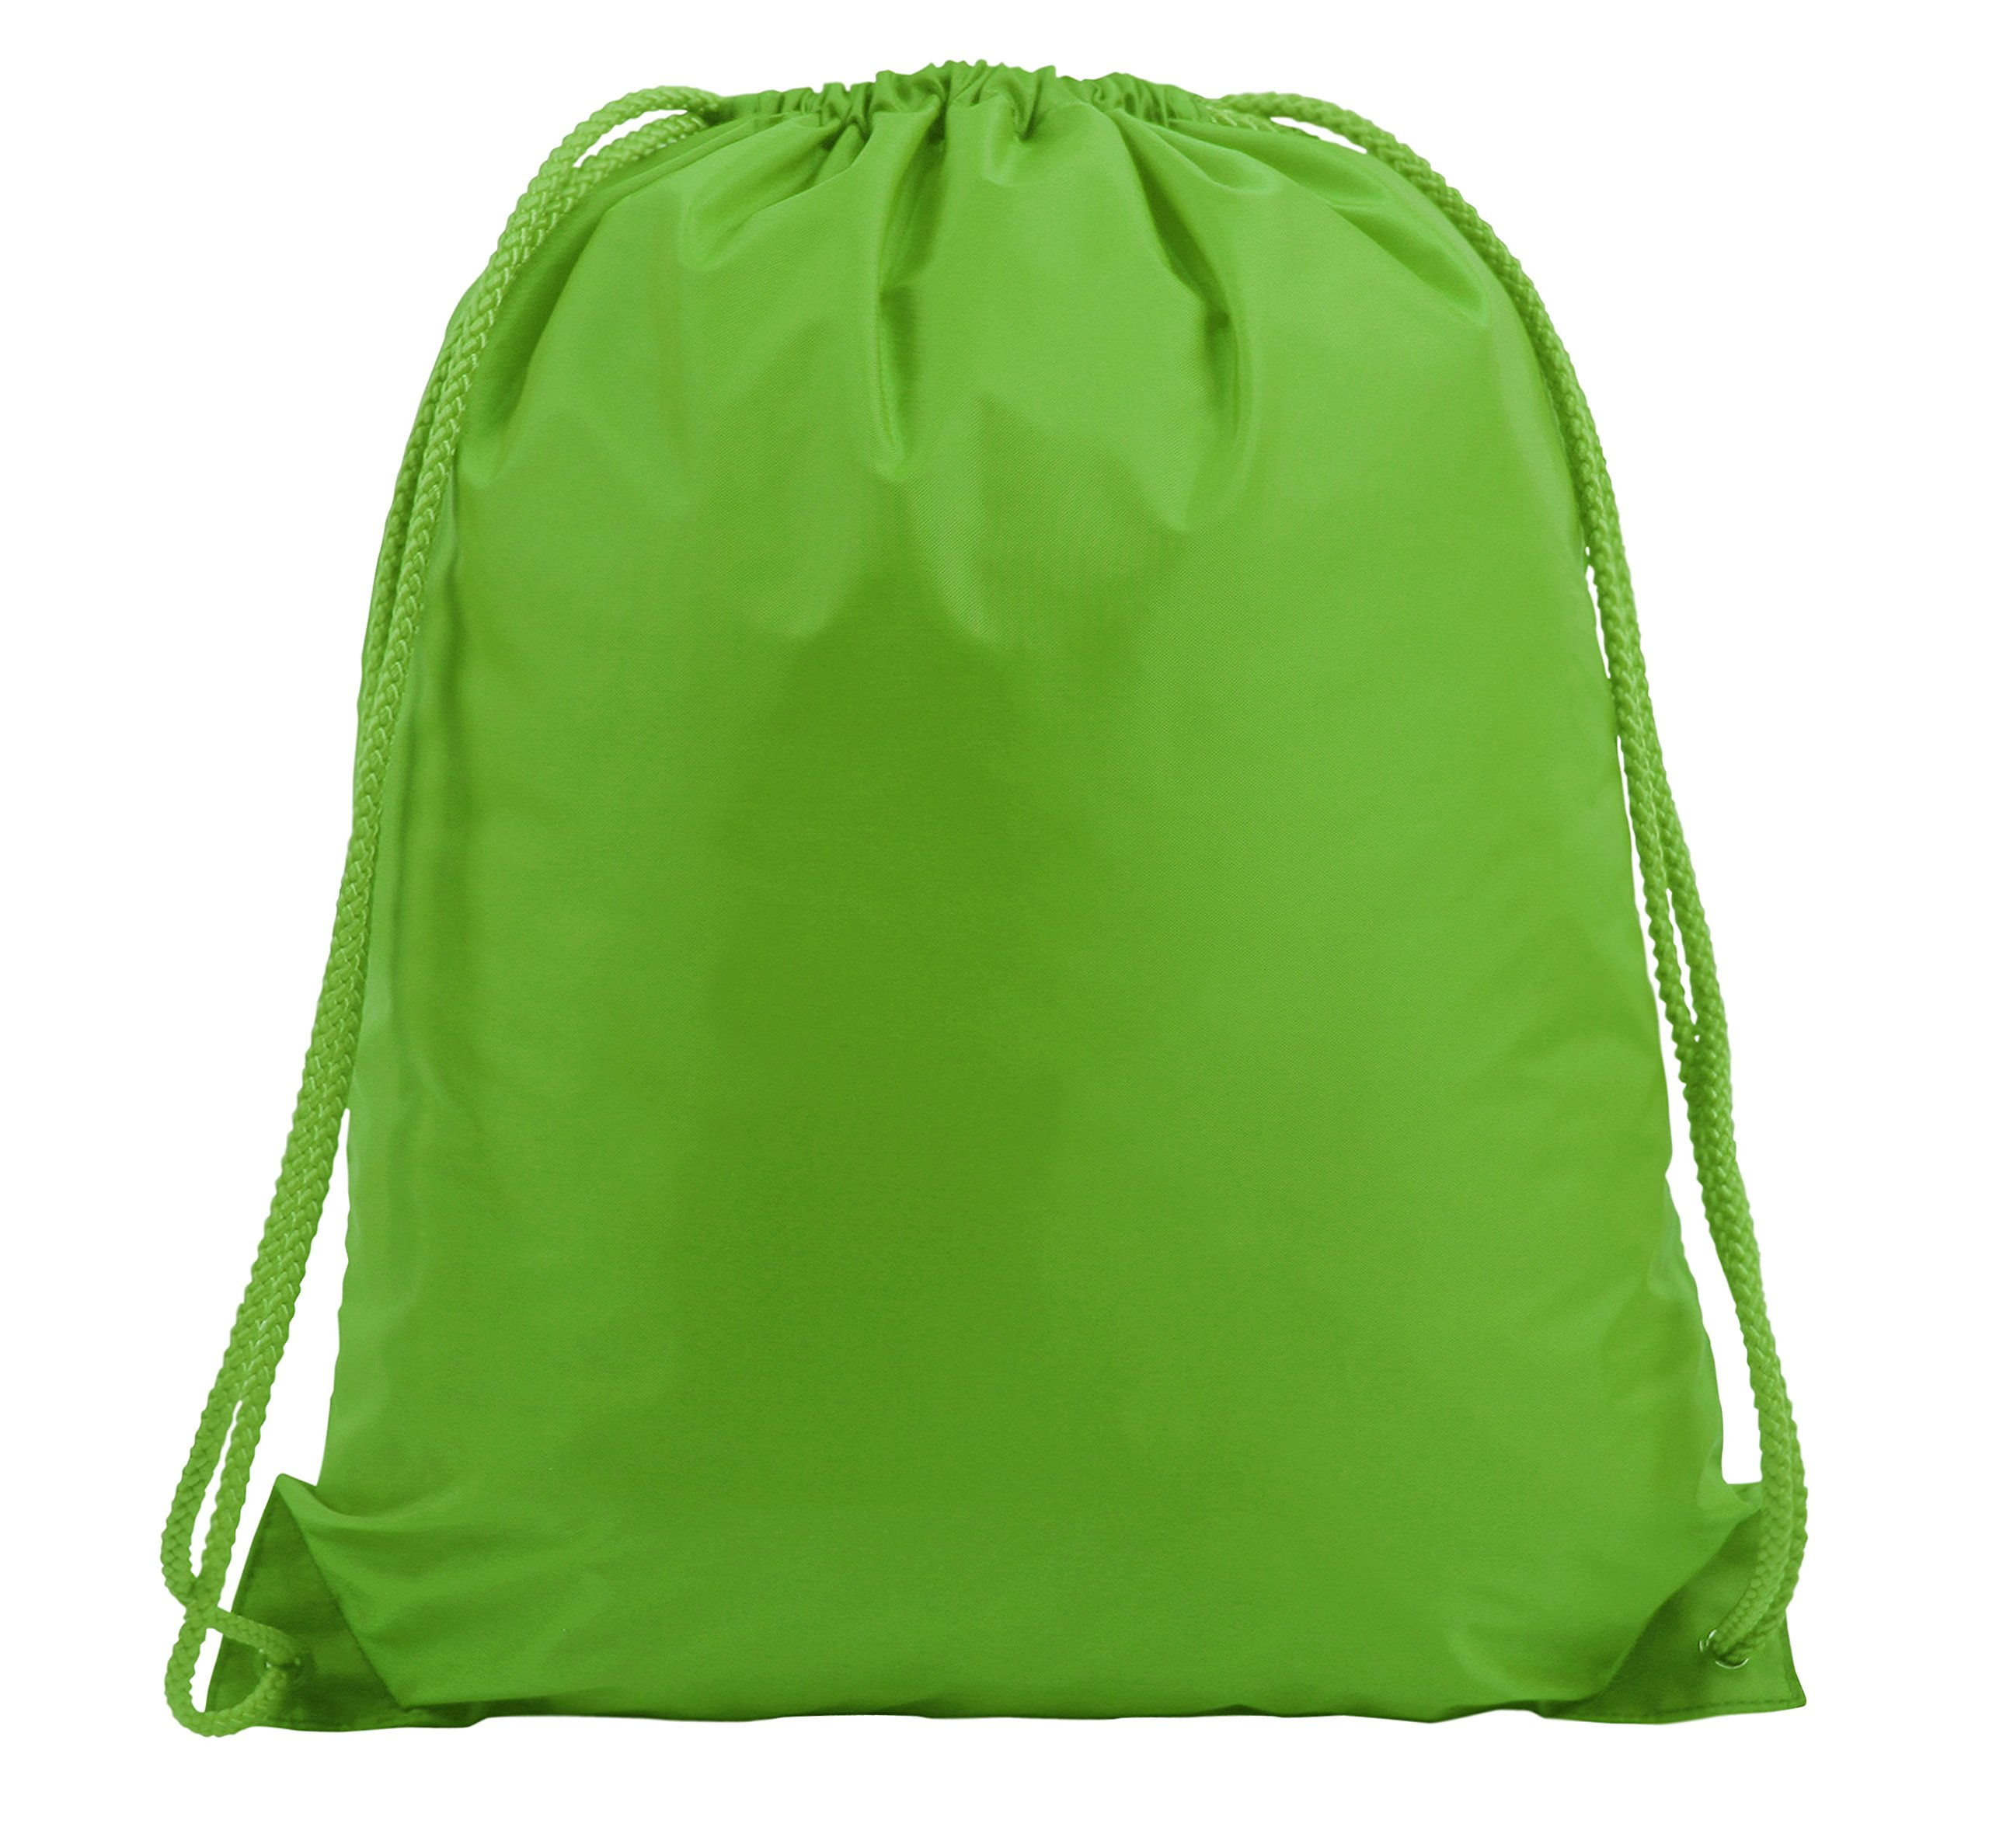 LARGE DRAWSTRING BACKPACK, Lime Green, Case of 60